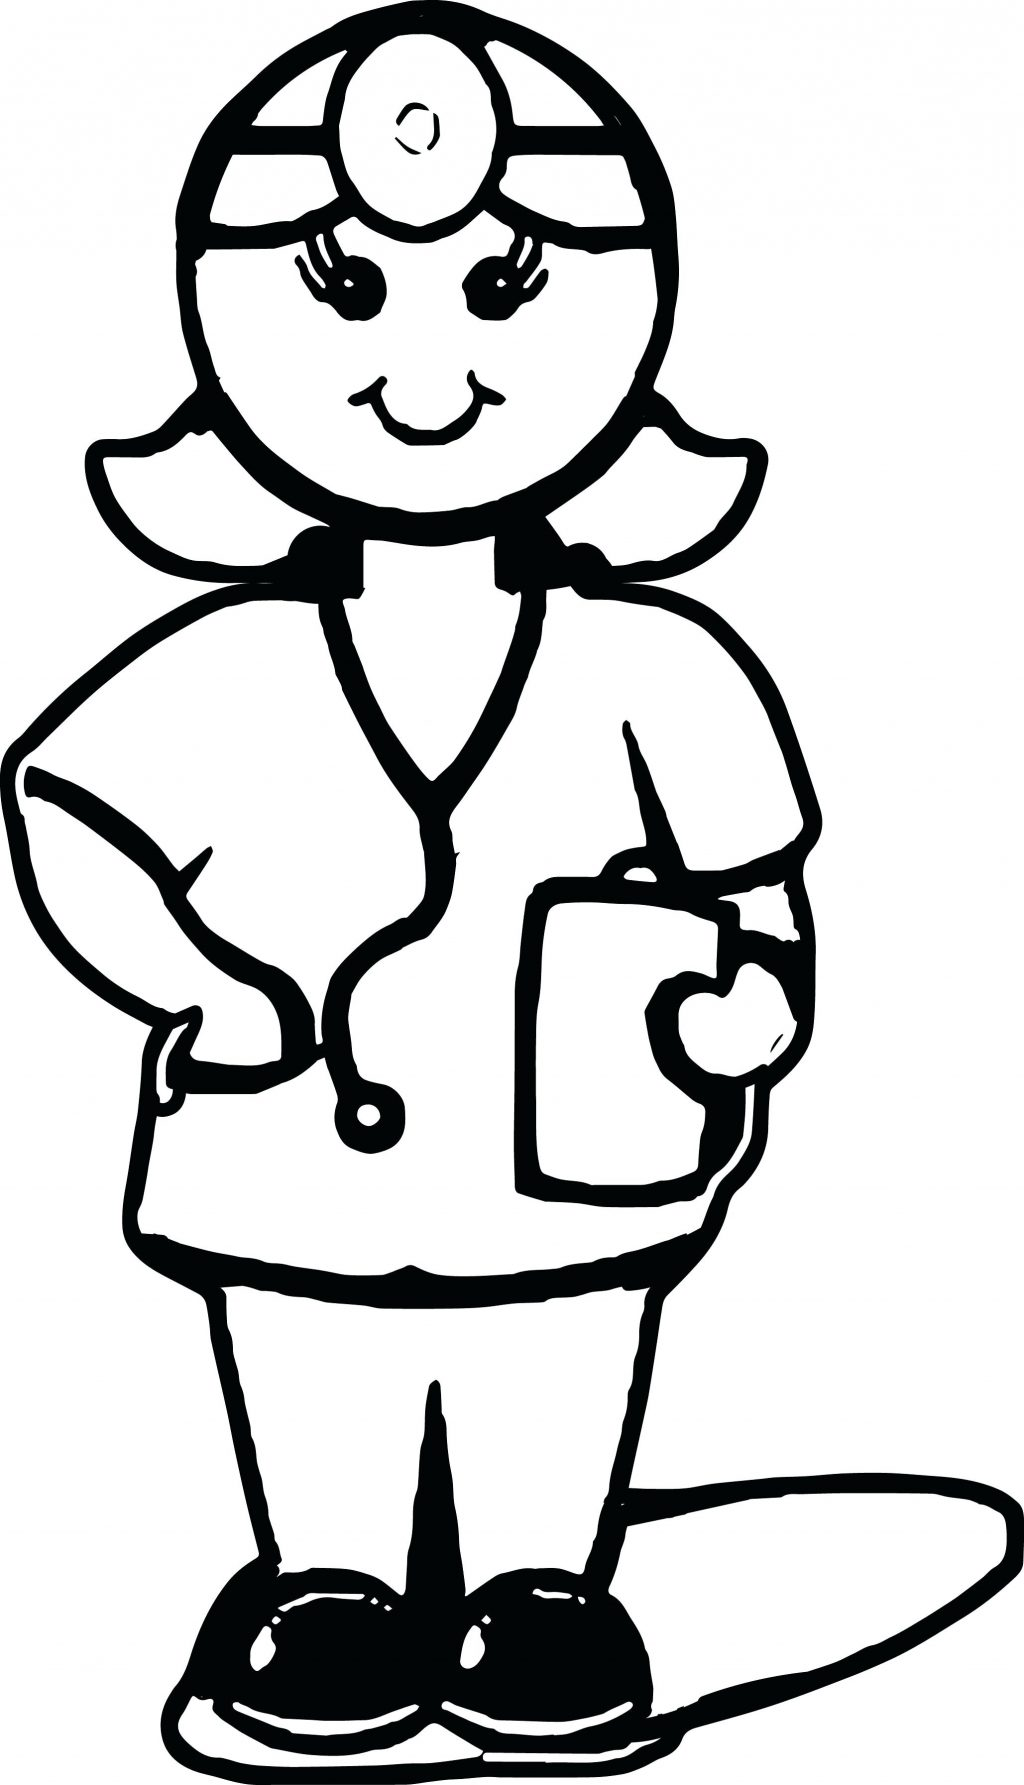 Doctor Coloring Pages at GetDrawings.com | Free for personal ...